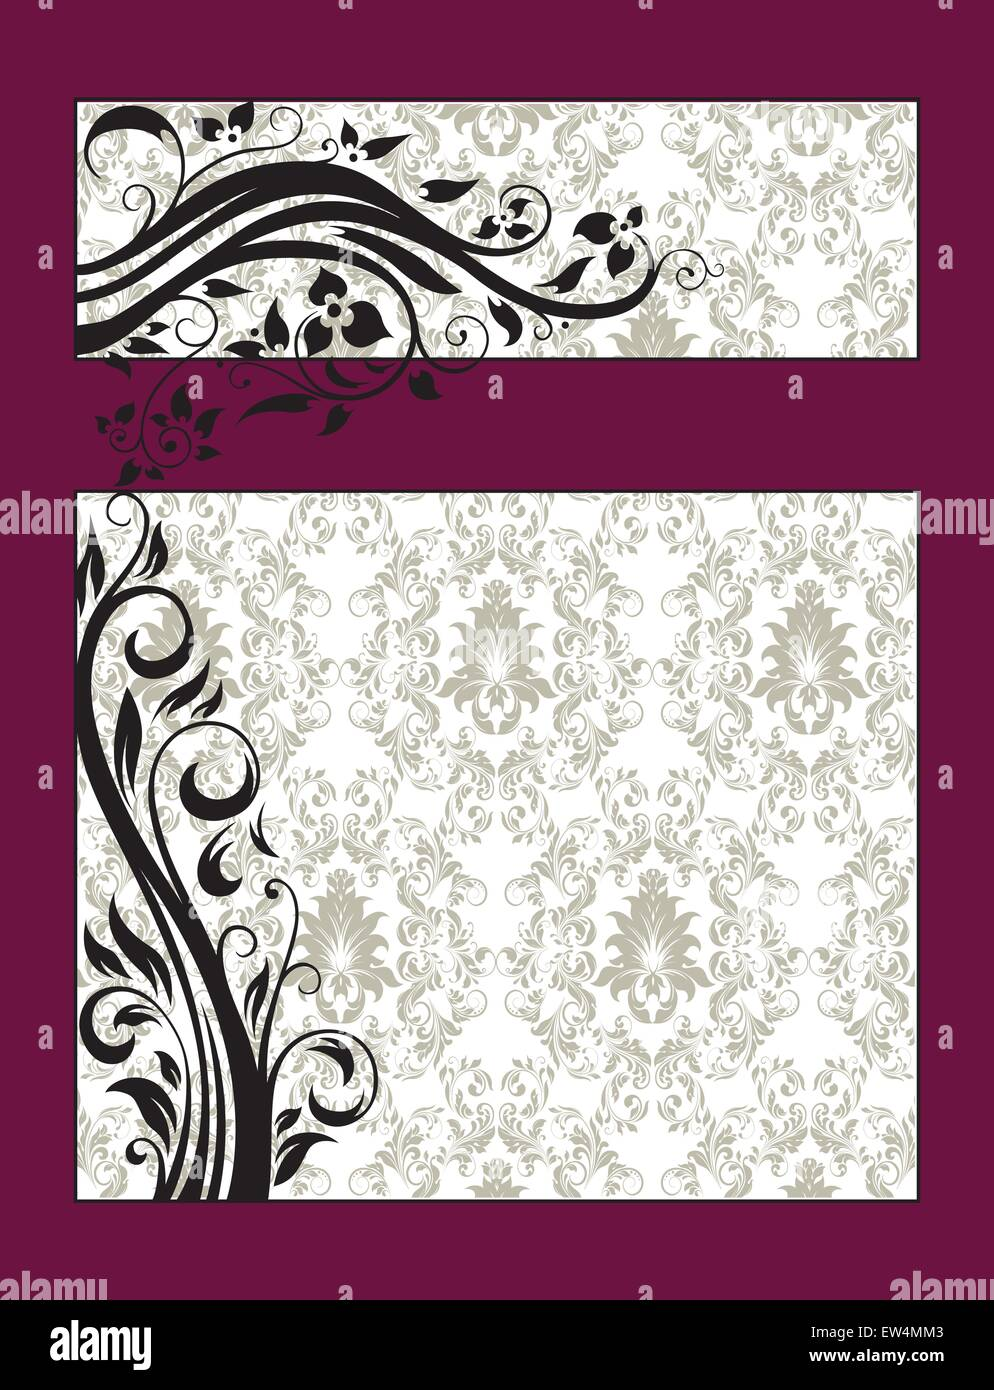 Vintage invitation card with ornate elegant retro abstract floral vintage invitation card with ornate elegant retro abstract floral design black flowers and leaves on pale green and white background with maroon frame stopboris Choice Image